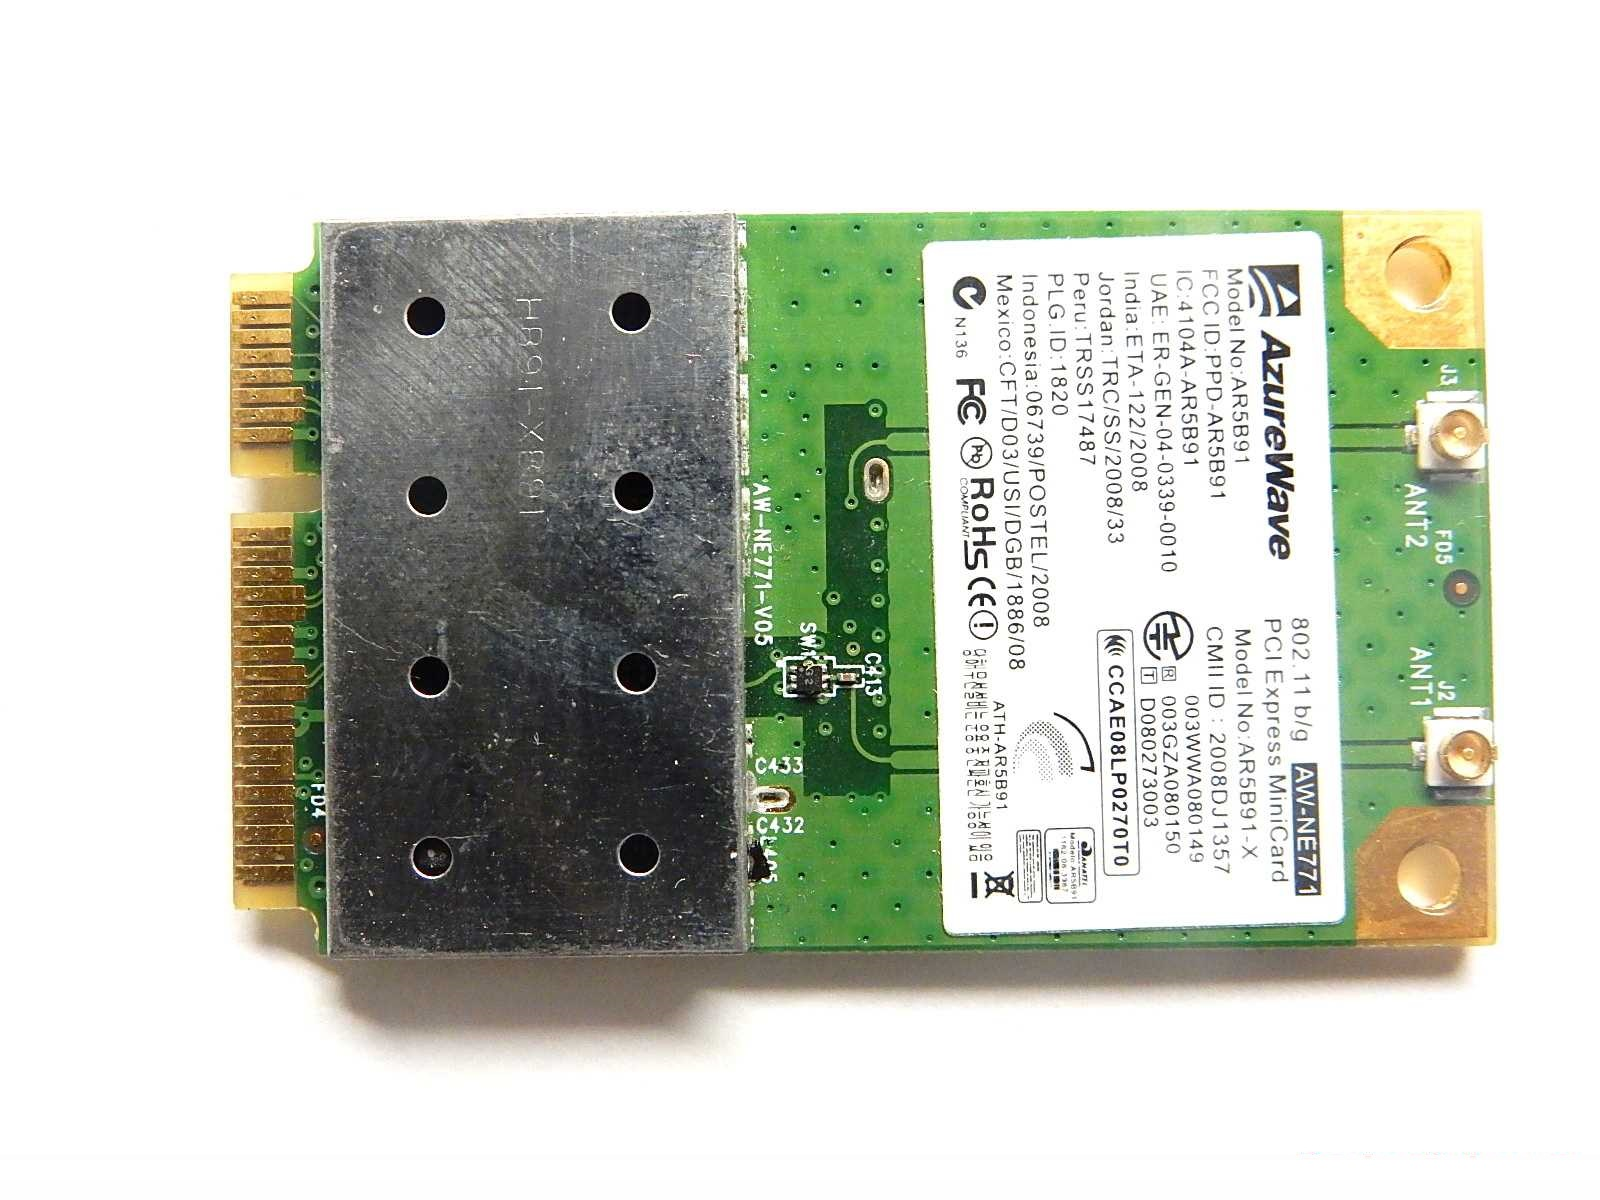 MT6220B MODEM WINDOWS 7 DRIVER